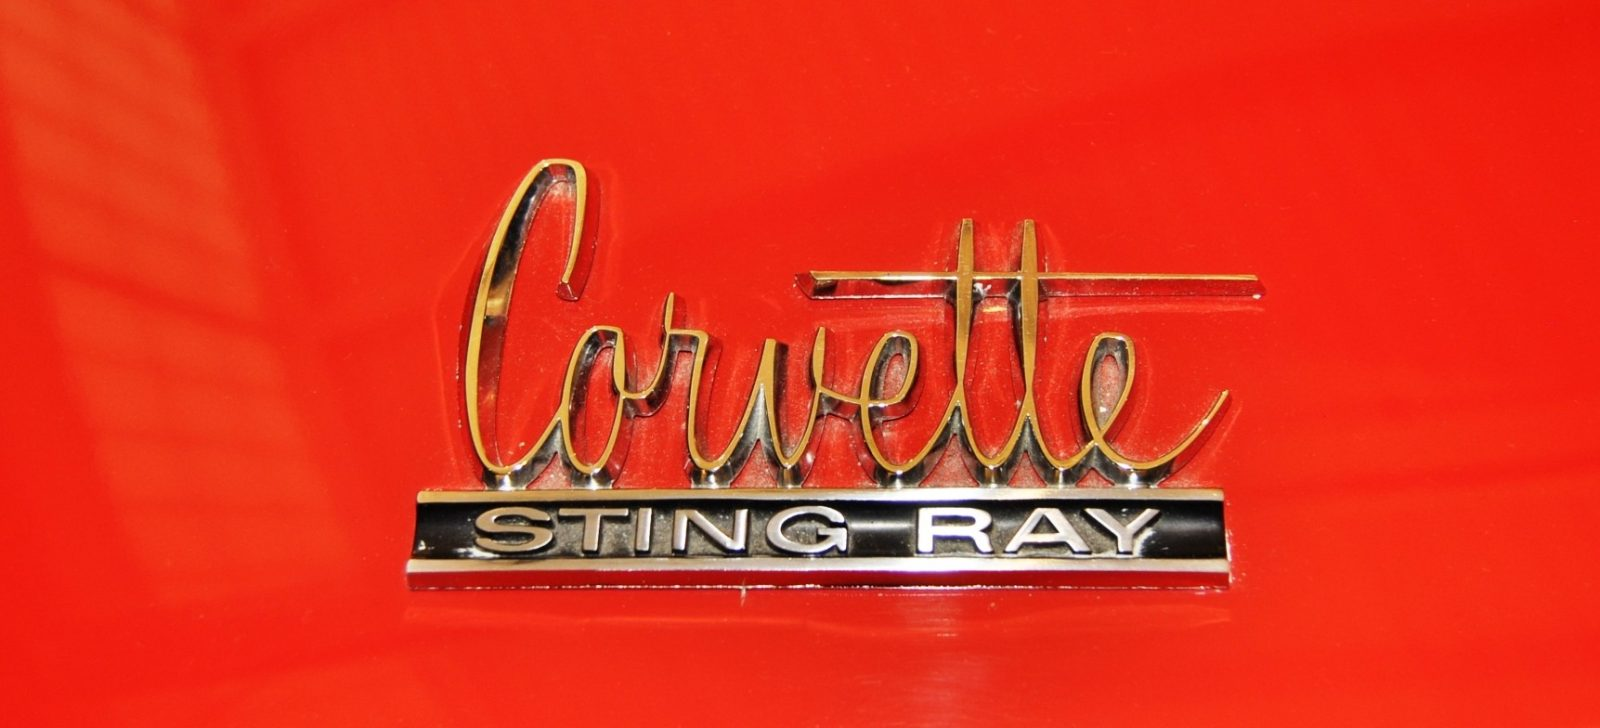 Corvette Museum Photo Tour -- The C1, C2 and C3 Generations in 83 High-Res Photos 8